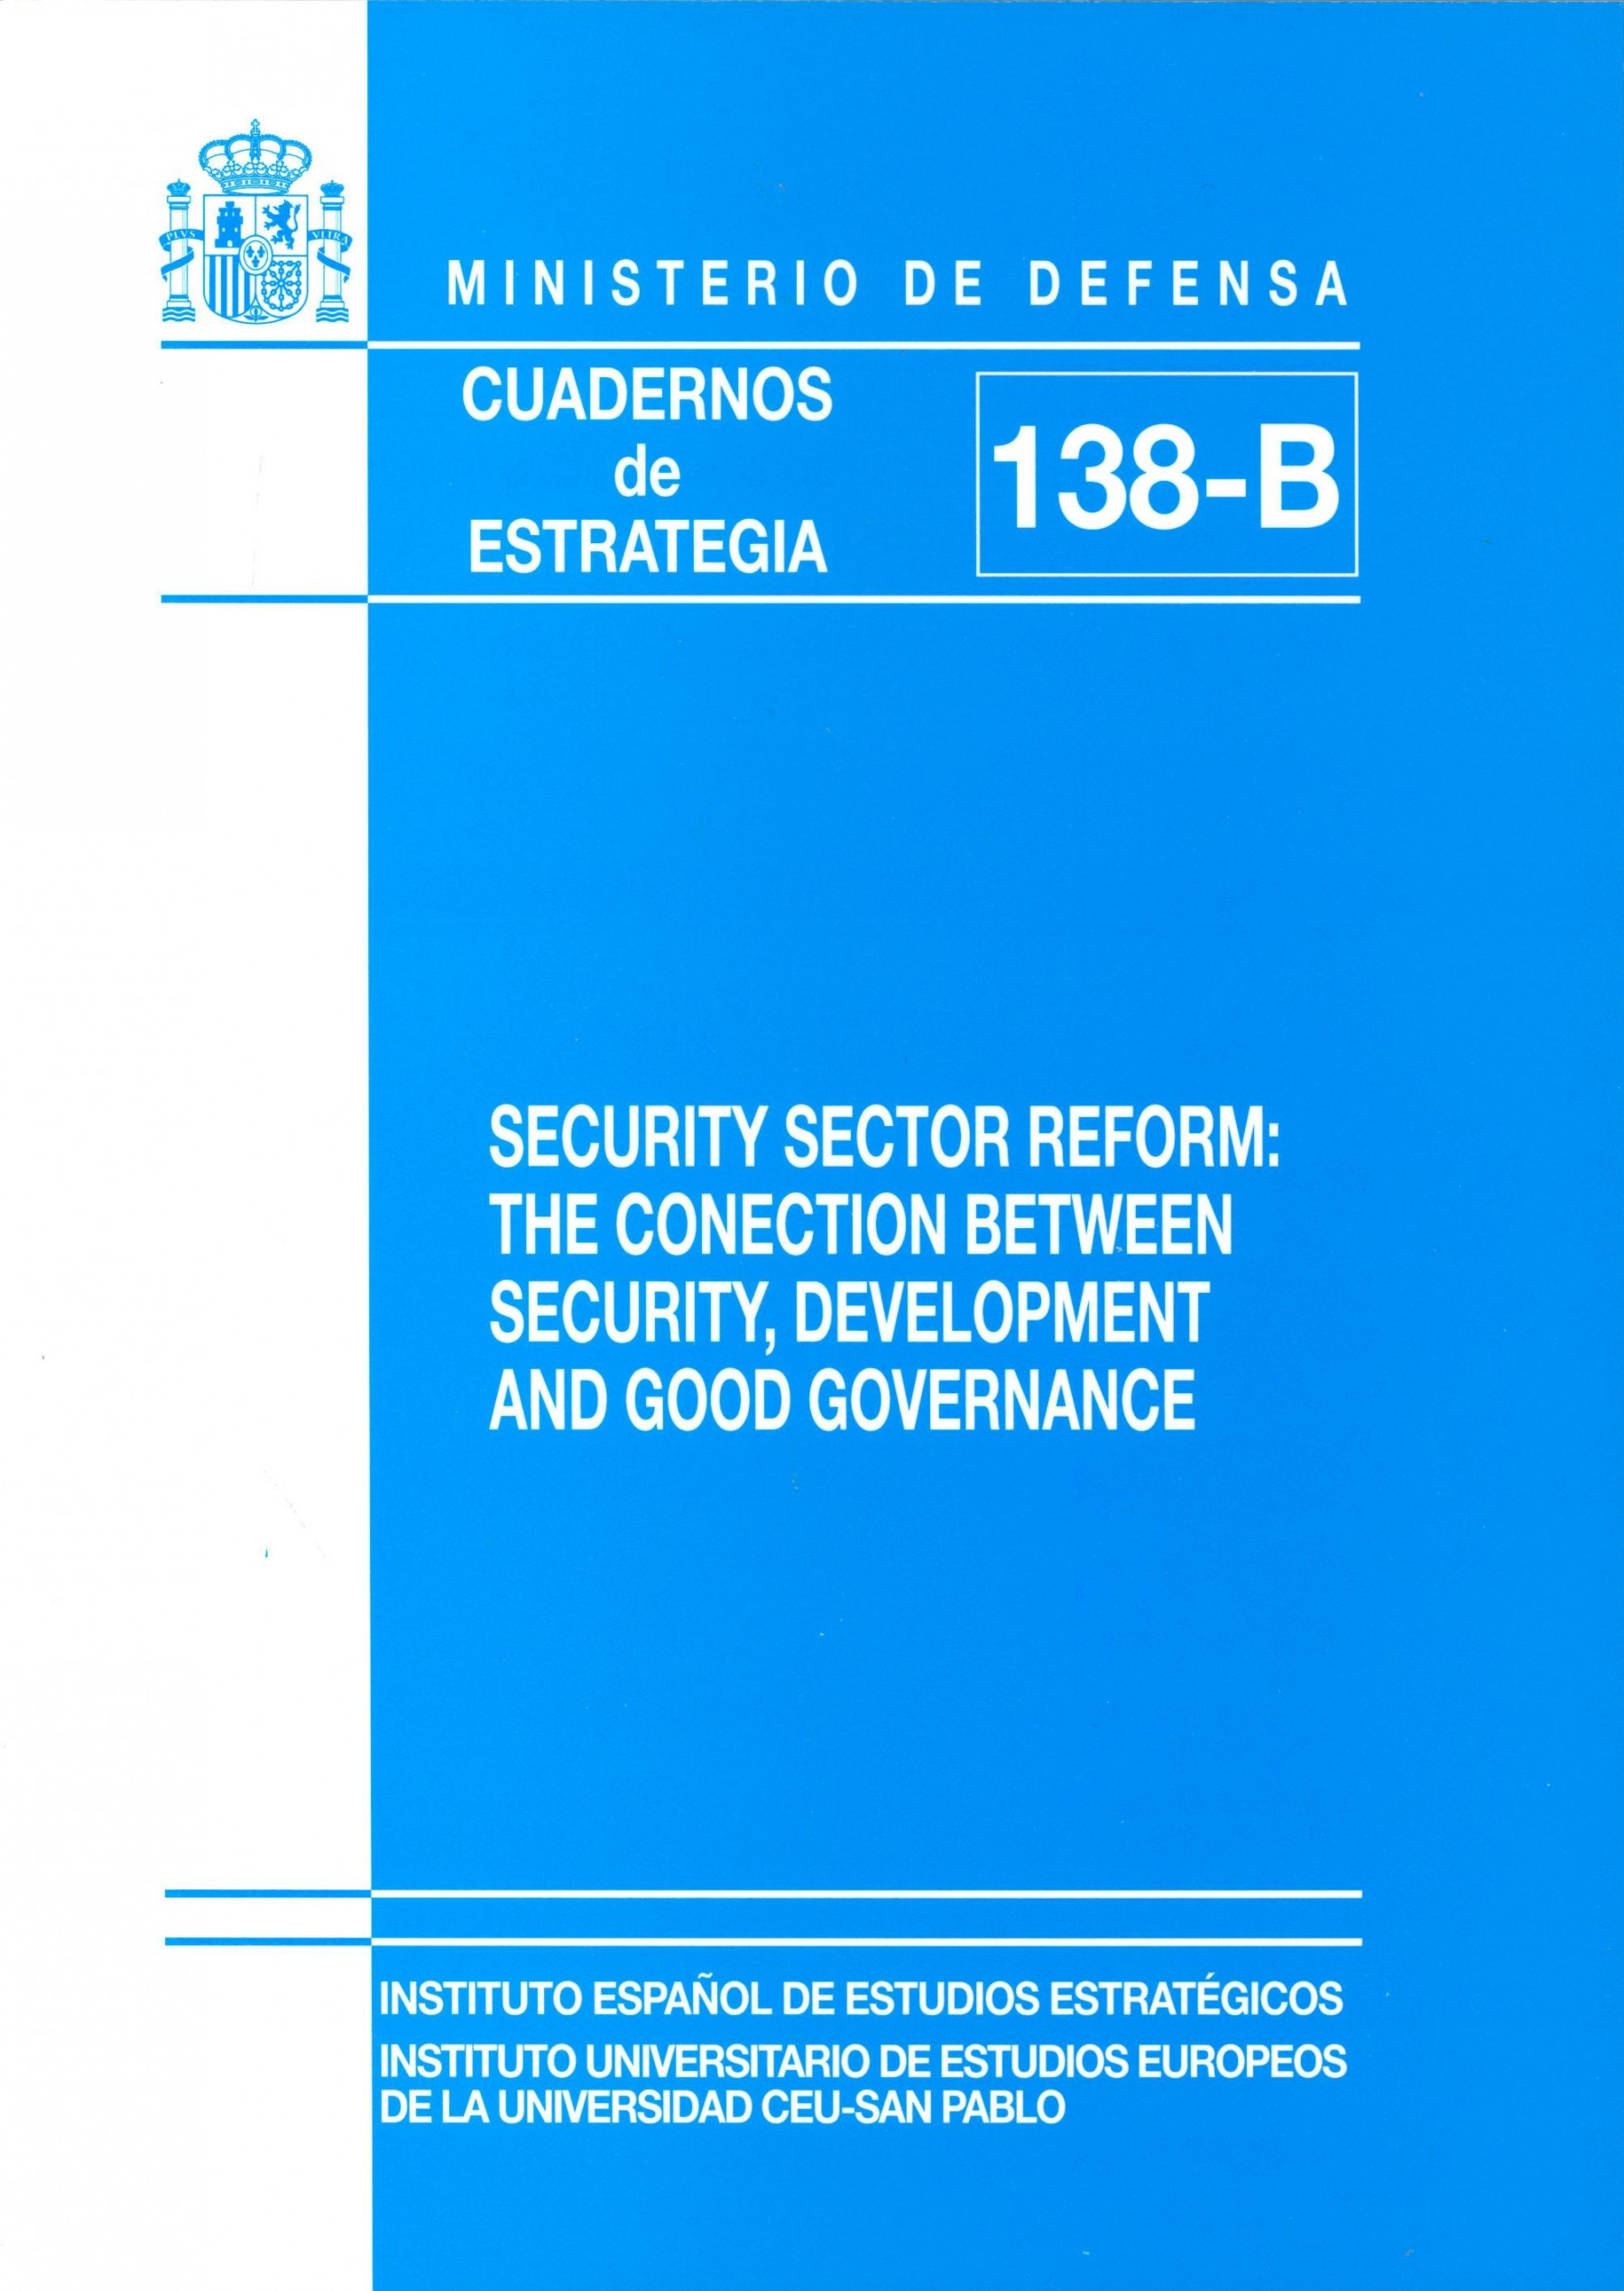 SECURITY SECTOR REFORM: THE CONECTION BETWEEN SECURITY